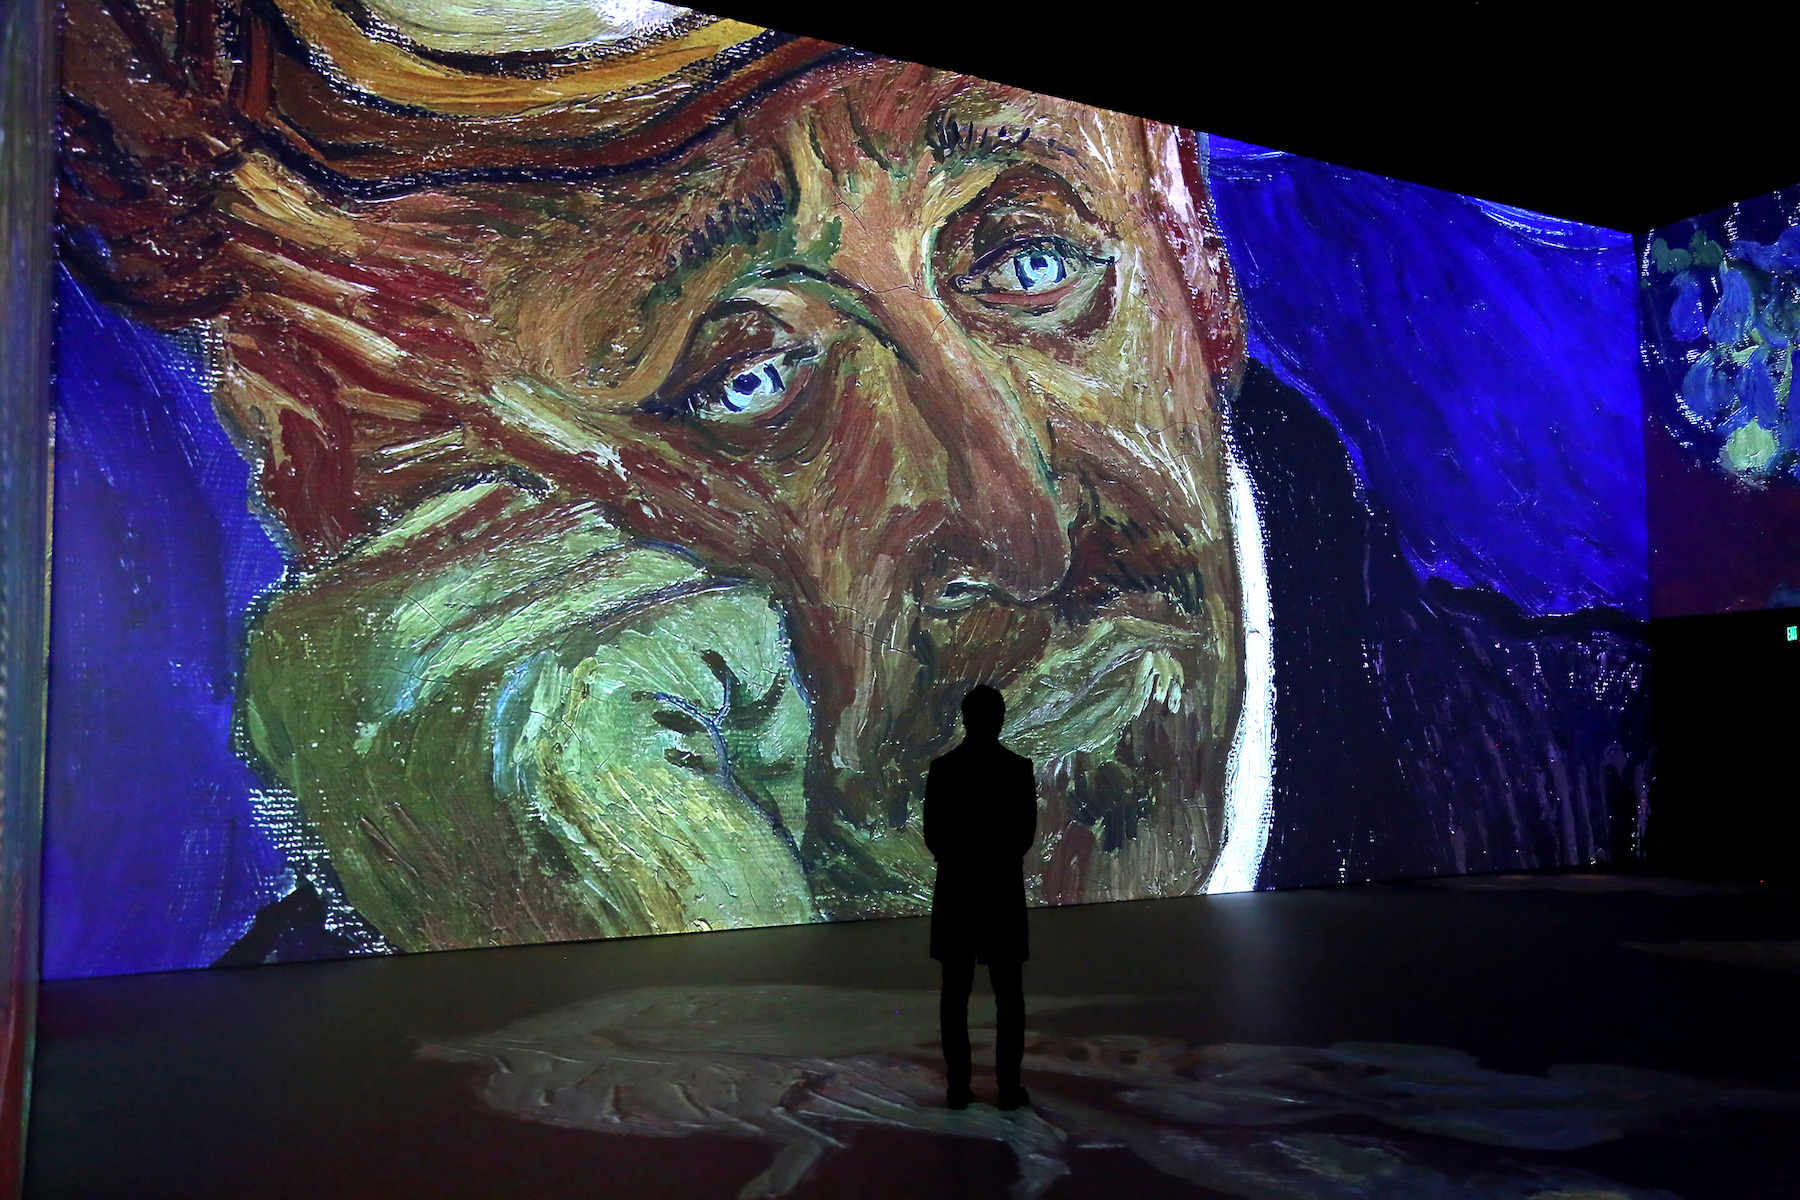 From Van Gogh Fever Sweeping the Nation to a Study About the Plight of Gallery Assistants: The Best and Worst of the Art World This Week | Artnet News